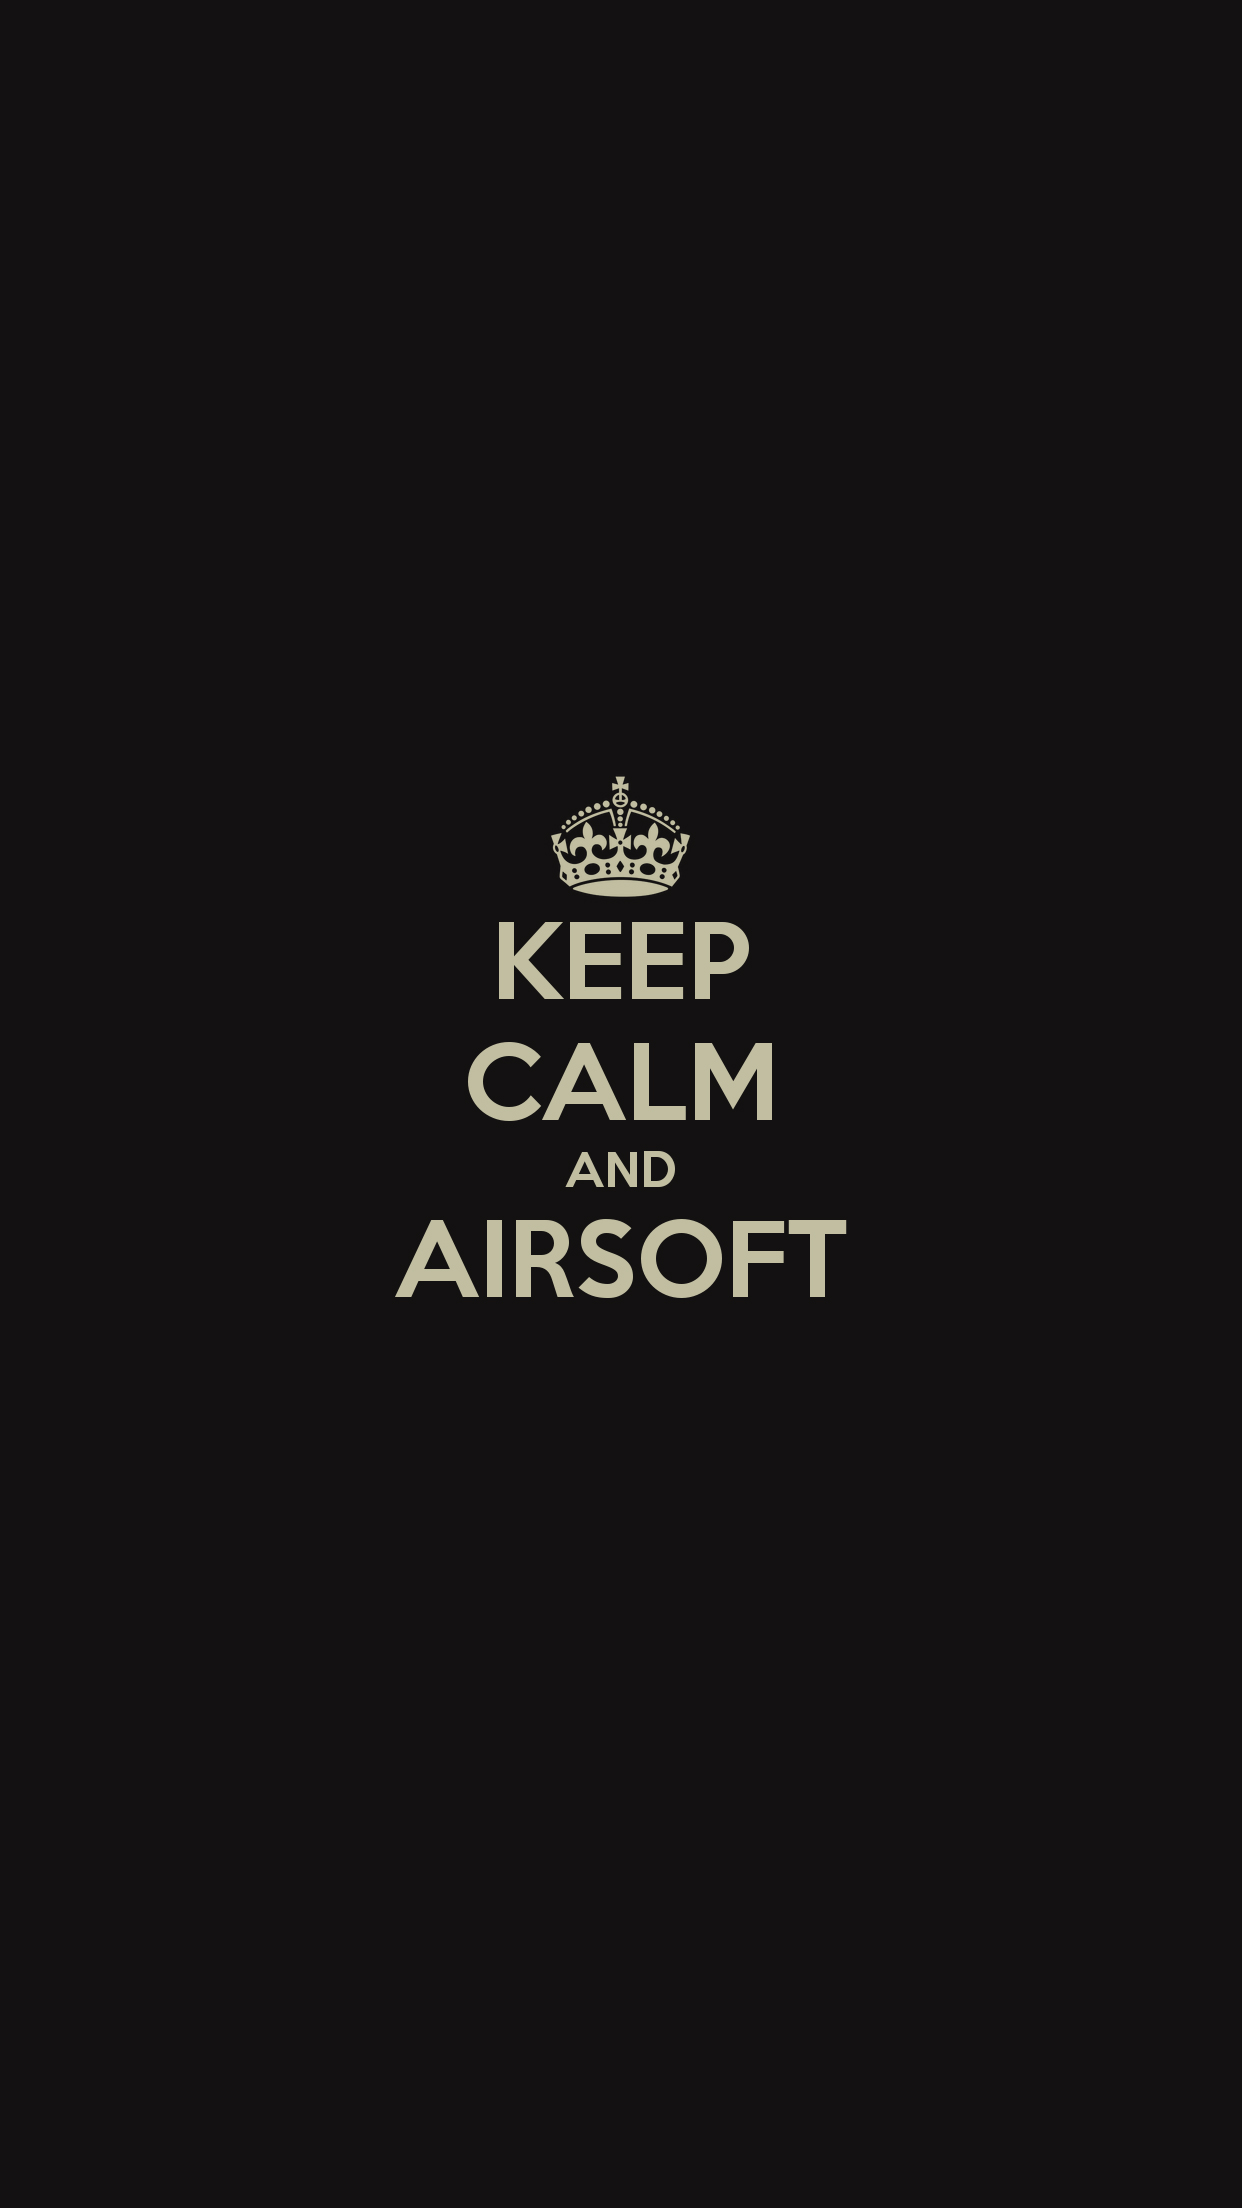 Keep Calm and Airsoft Wallpaper for iPhone X 8 7 6 1242x2208